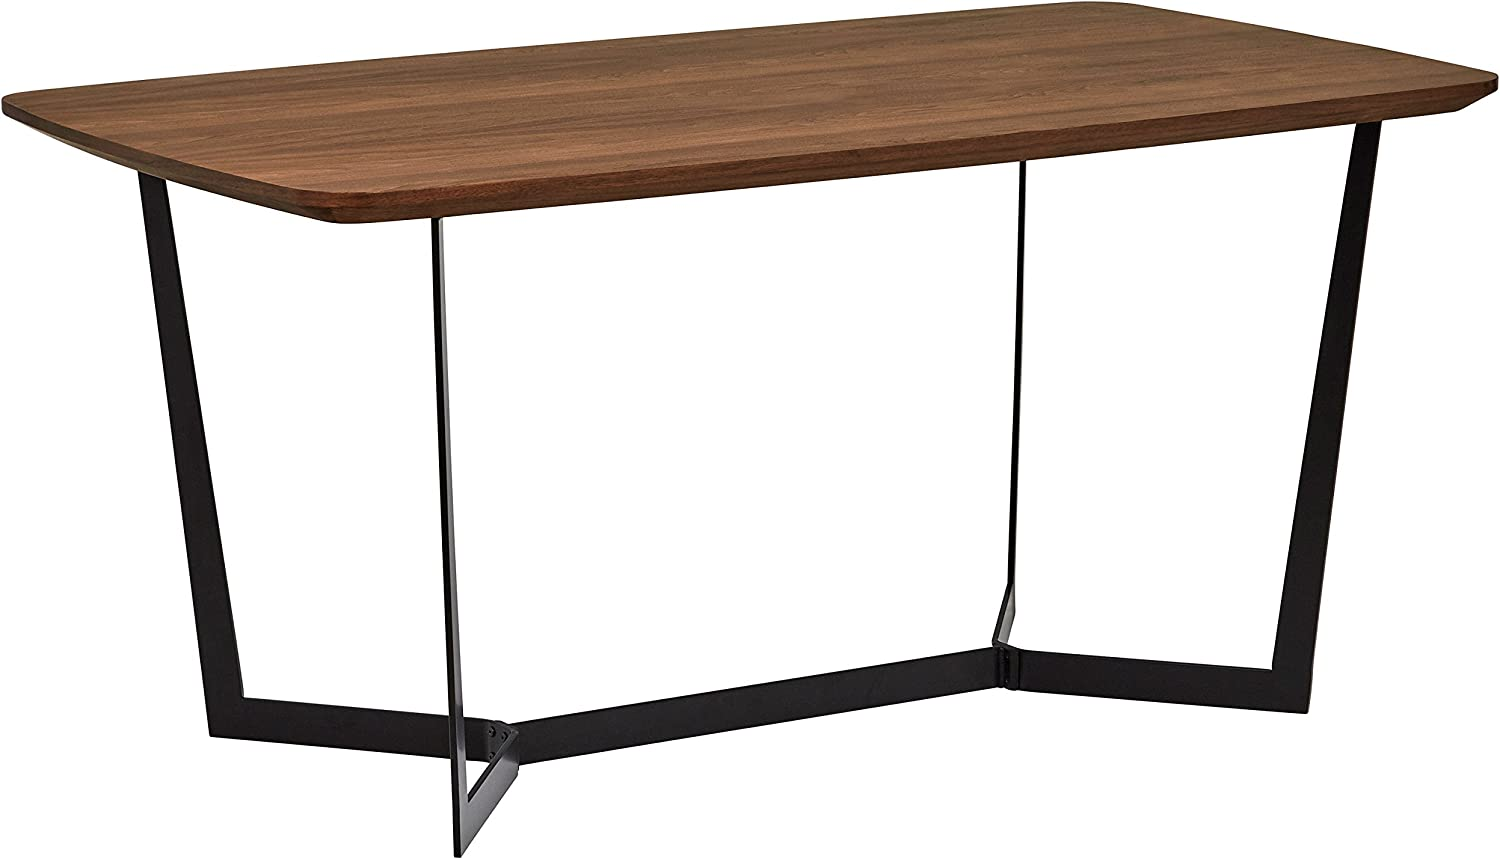 "Rivet Modern Industrial Pedestal Dining Room Table, 63""W, Walnut Wood, Metal"